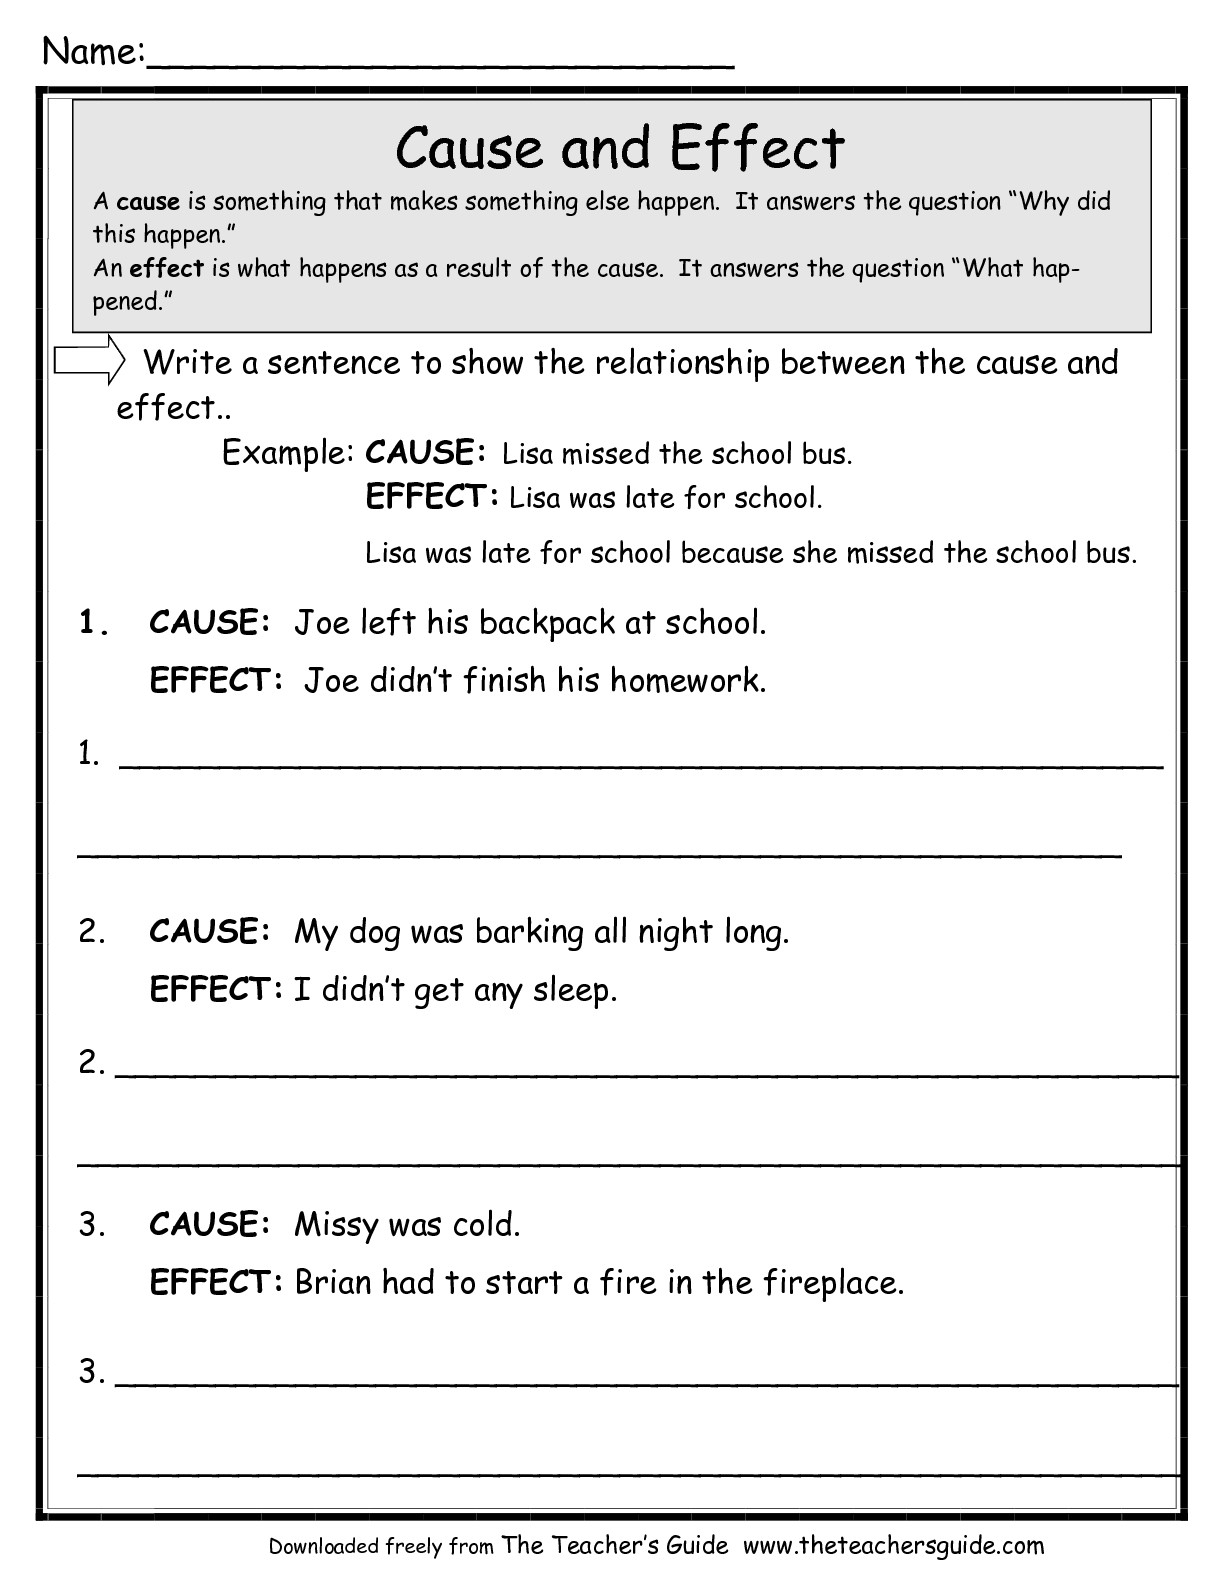 Cause And Effect Worksheets From The Teacher S Guide To